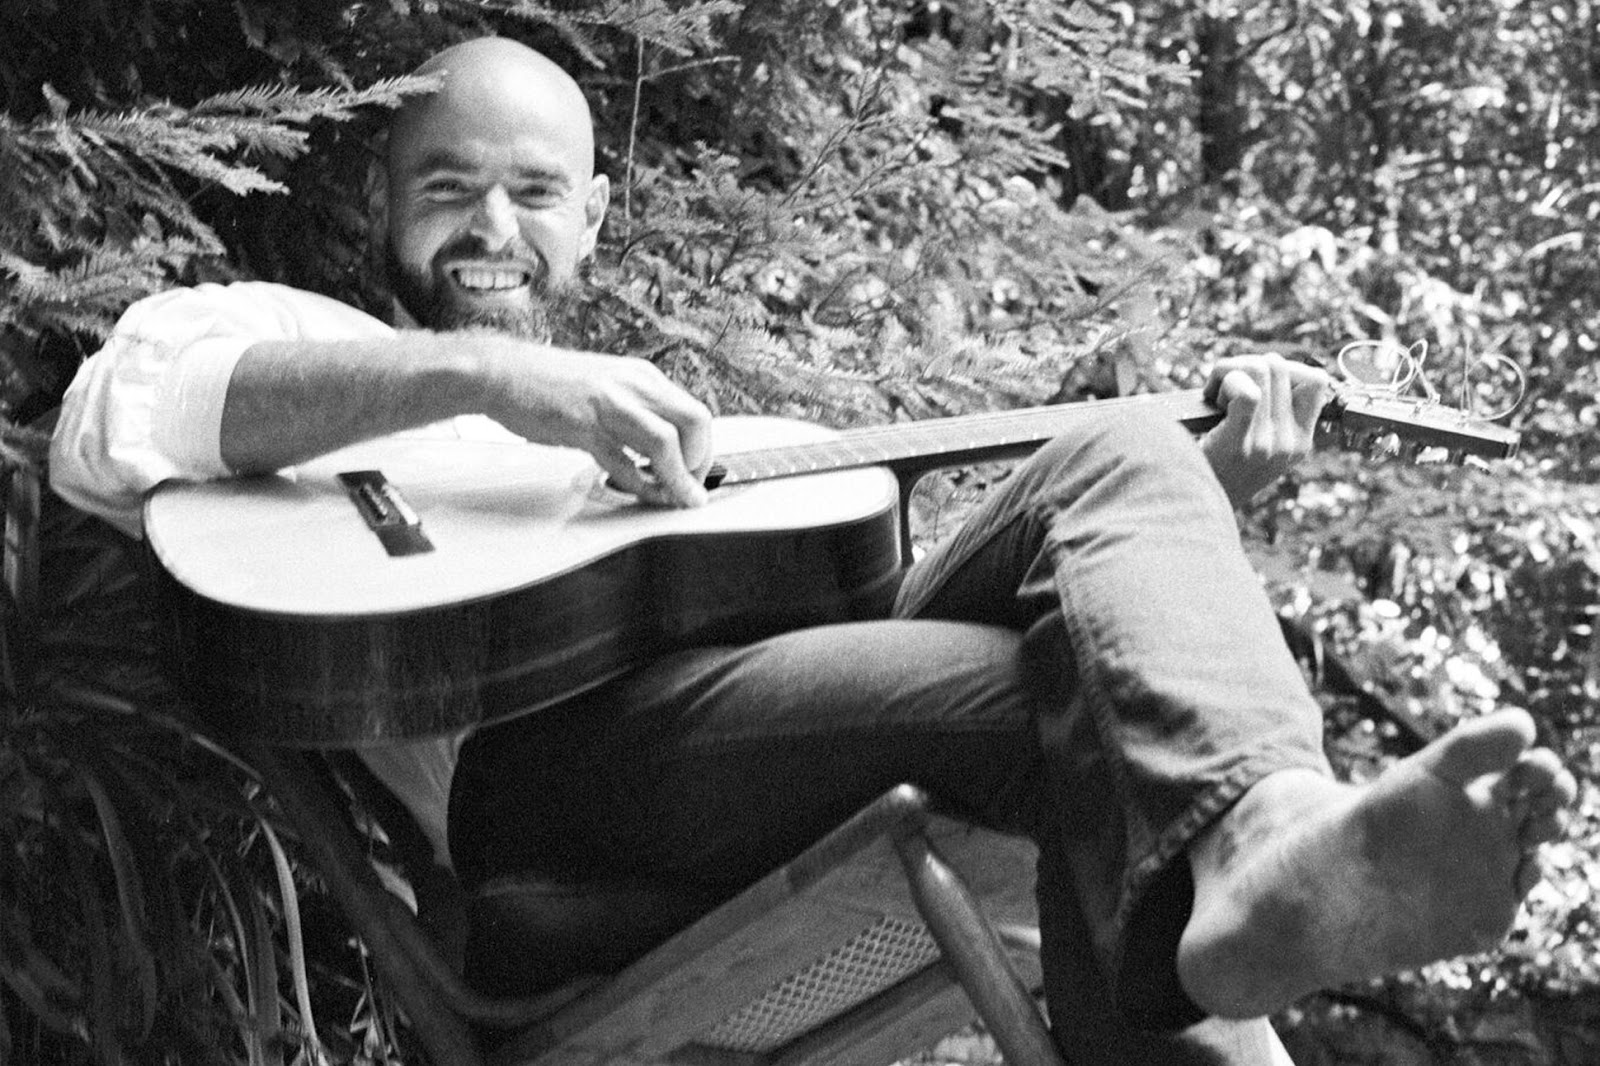 Shel Silverstein quotes and poems (121+)